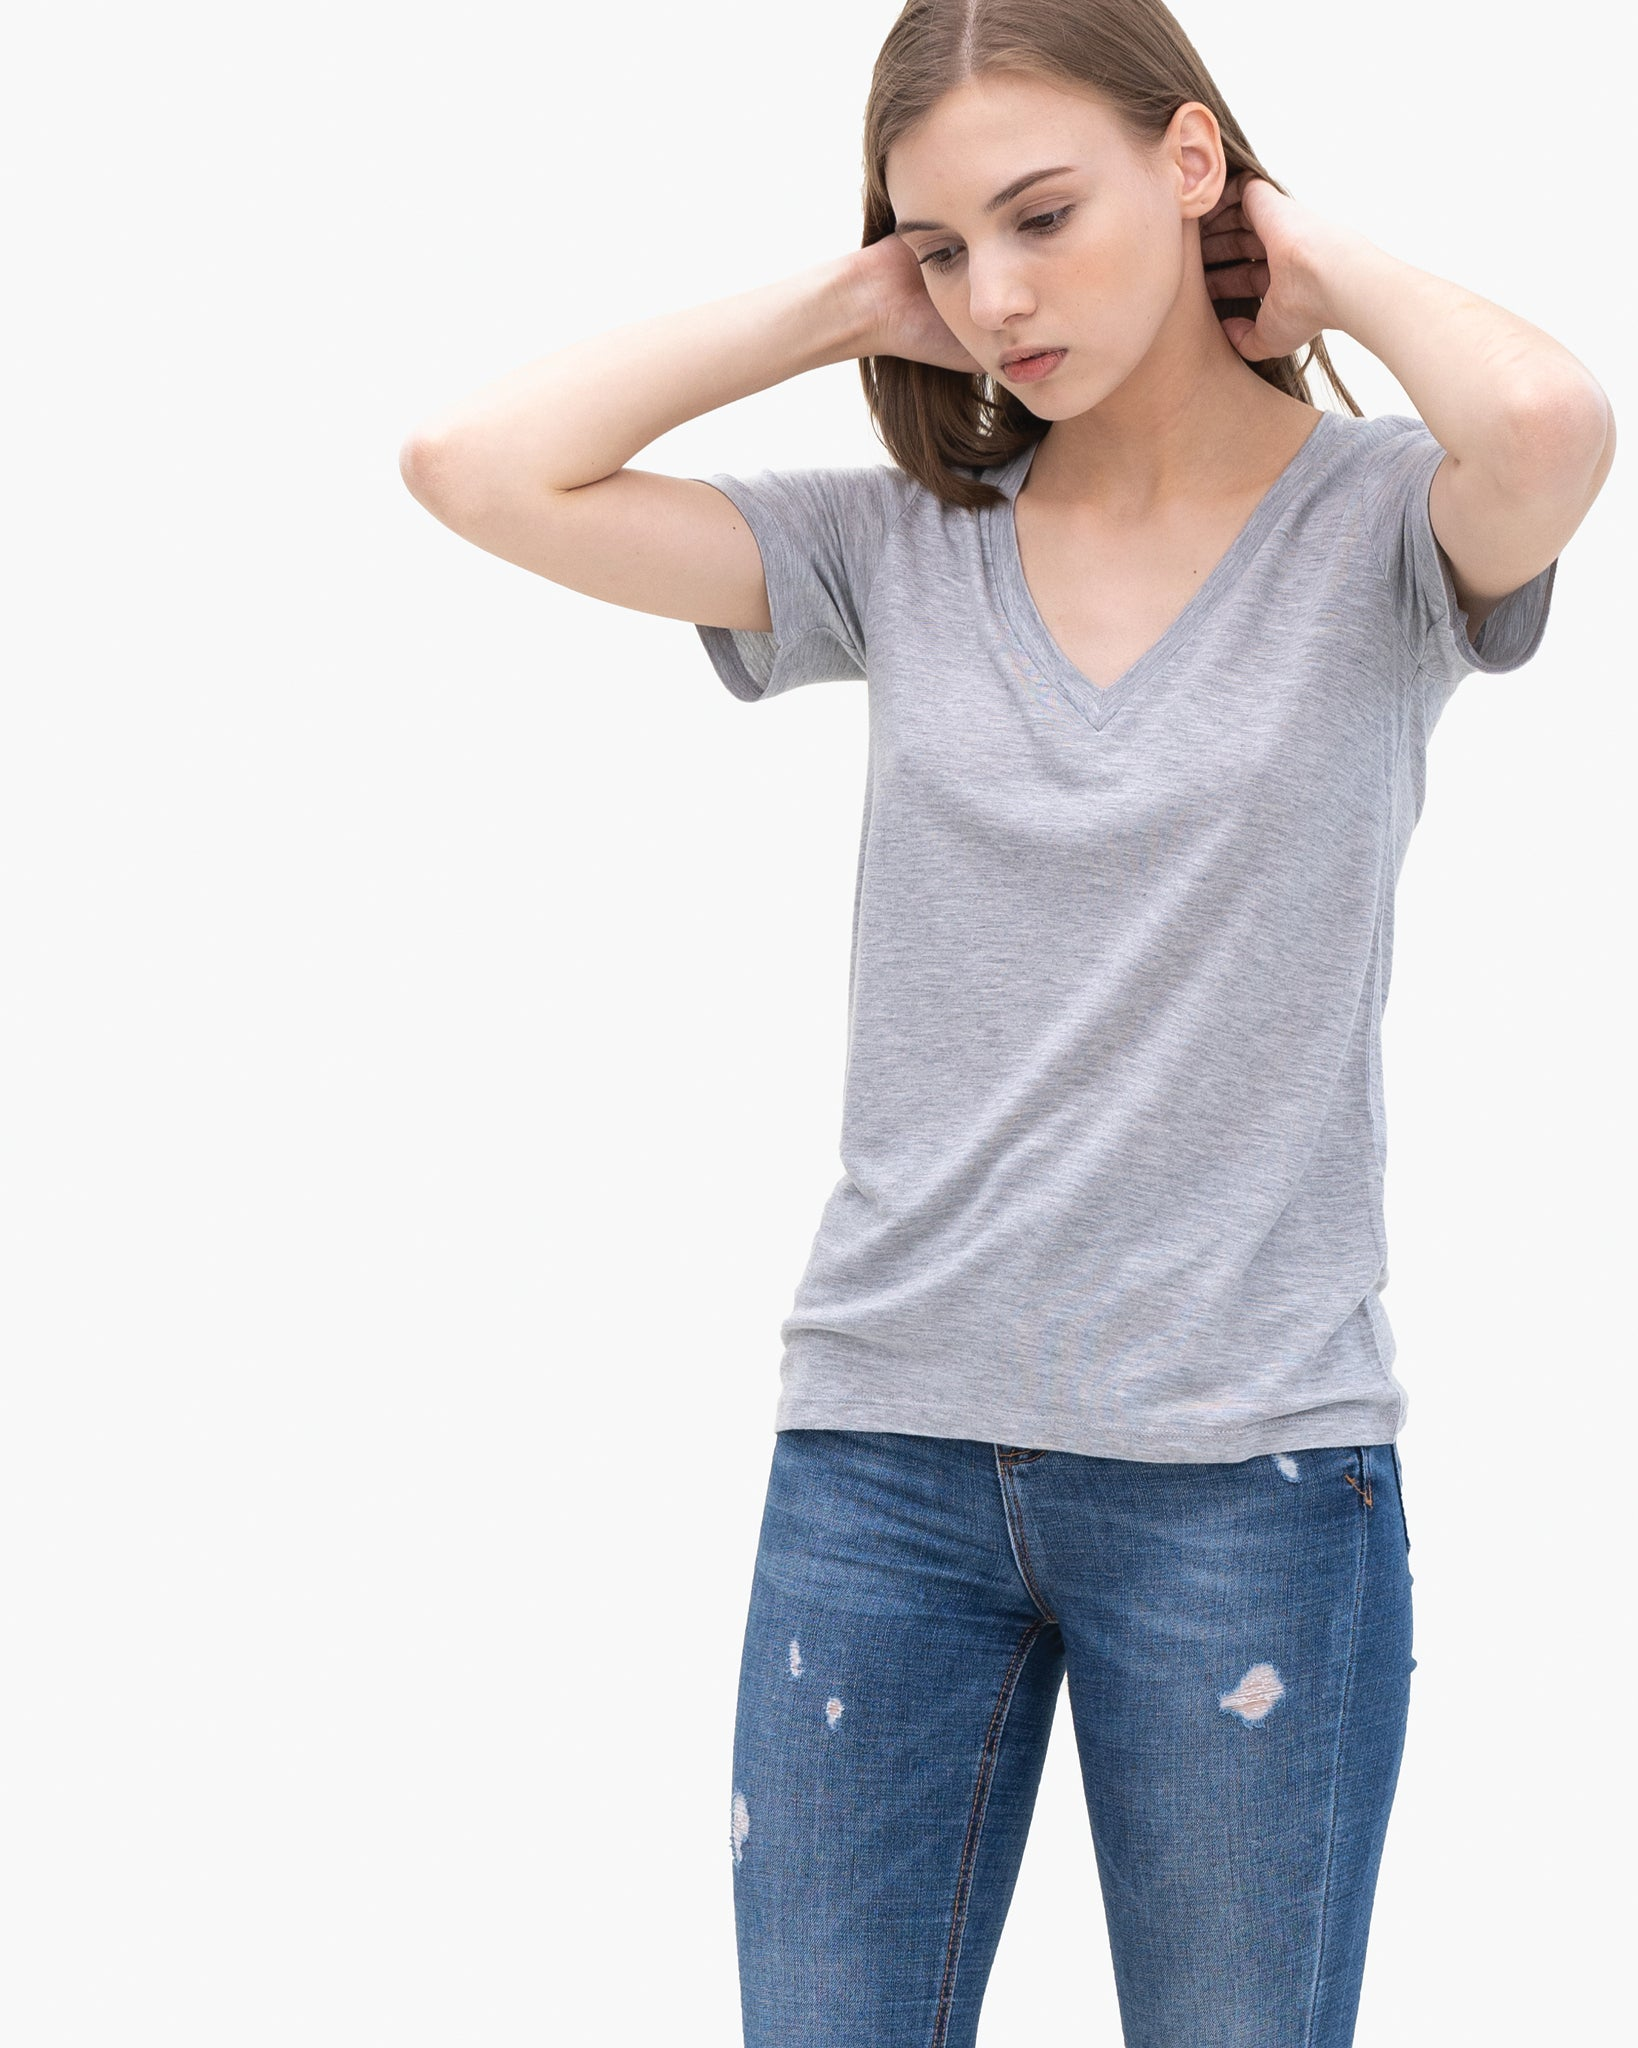 Women Tencel Lyocell V-Neck T-shirt Grey Featured